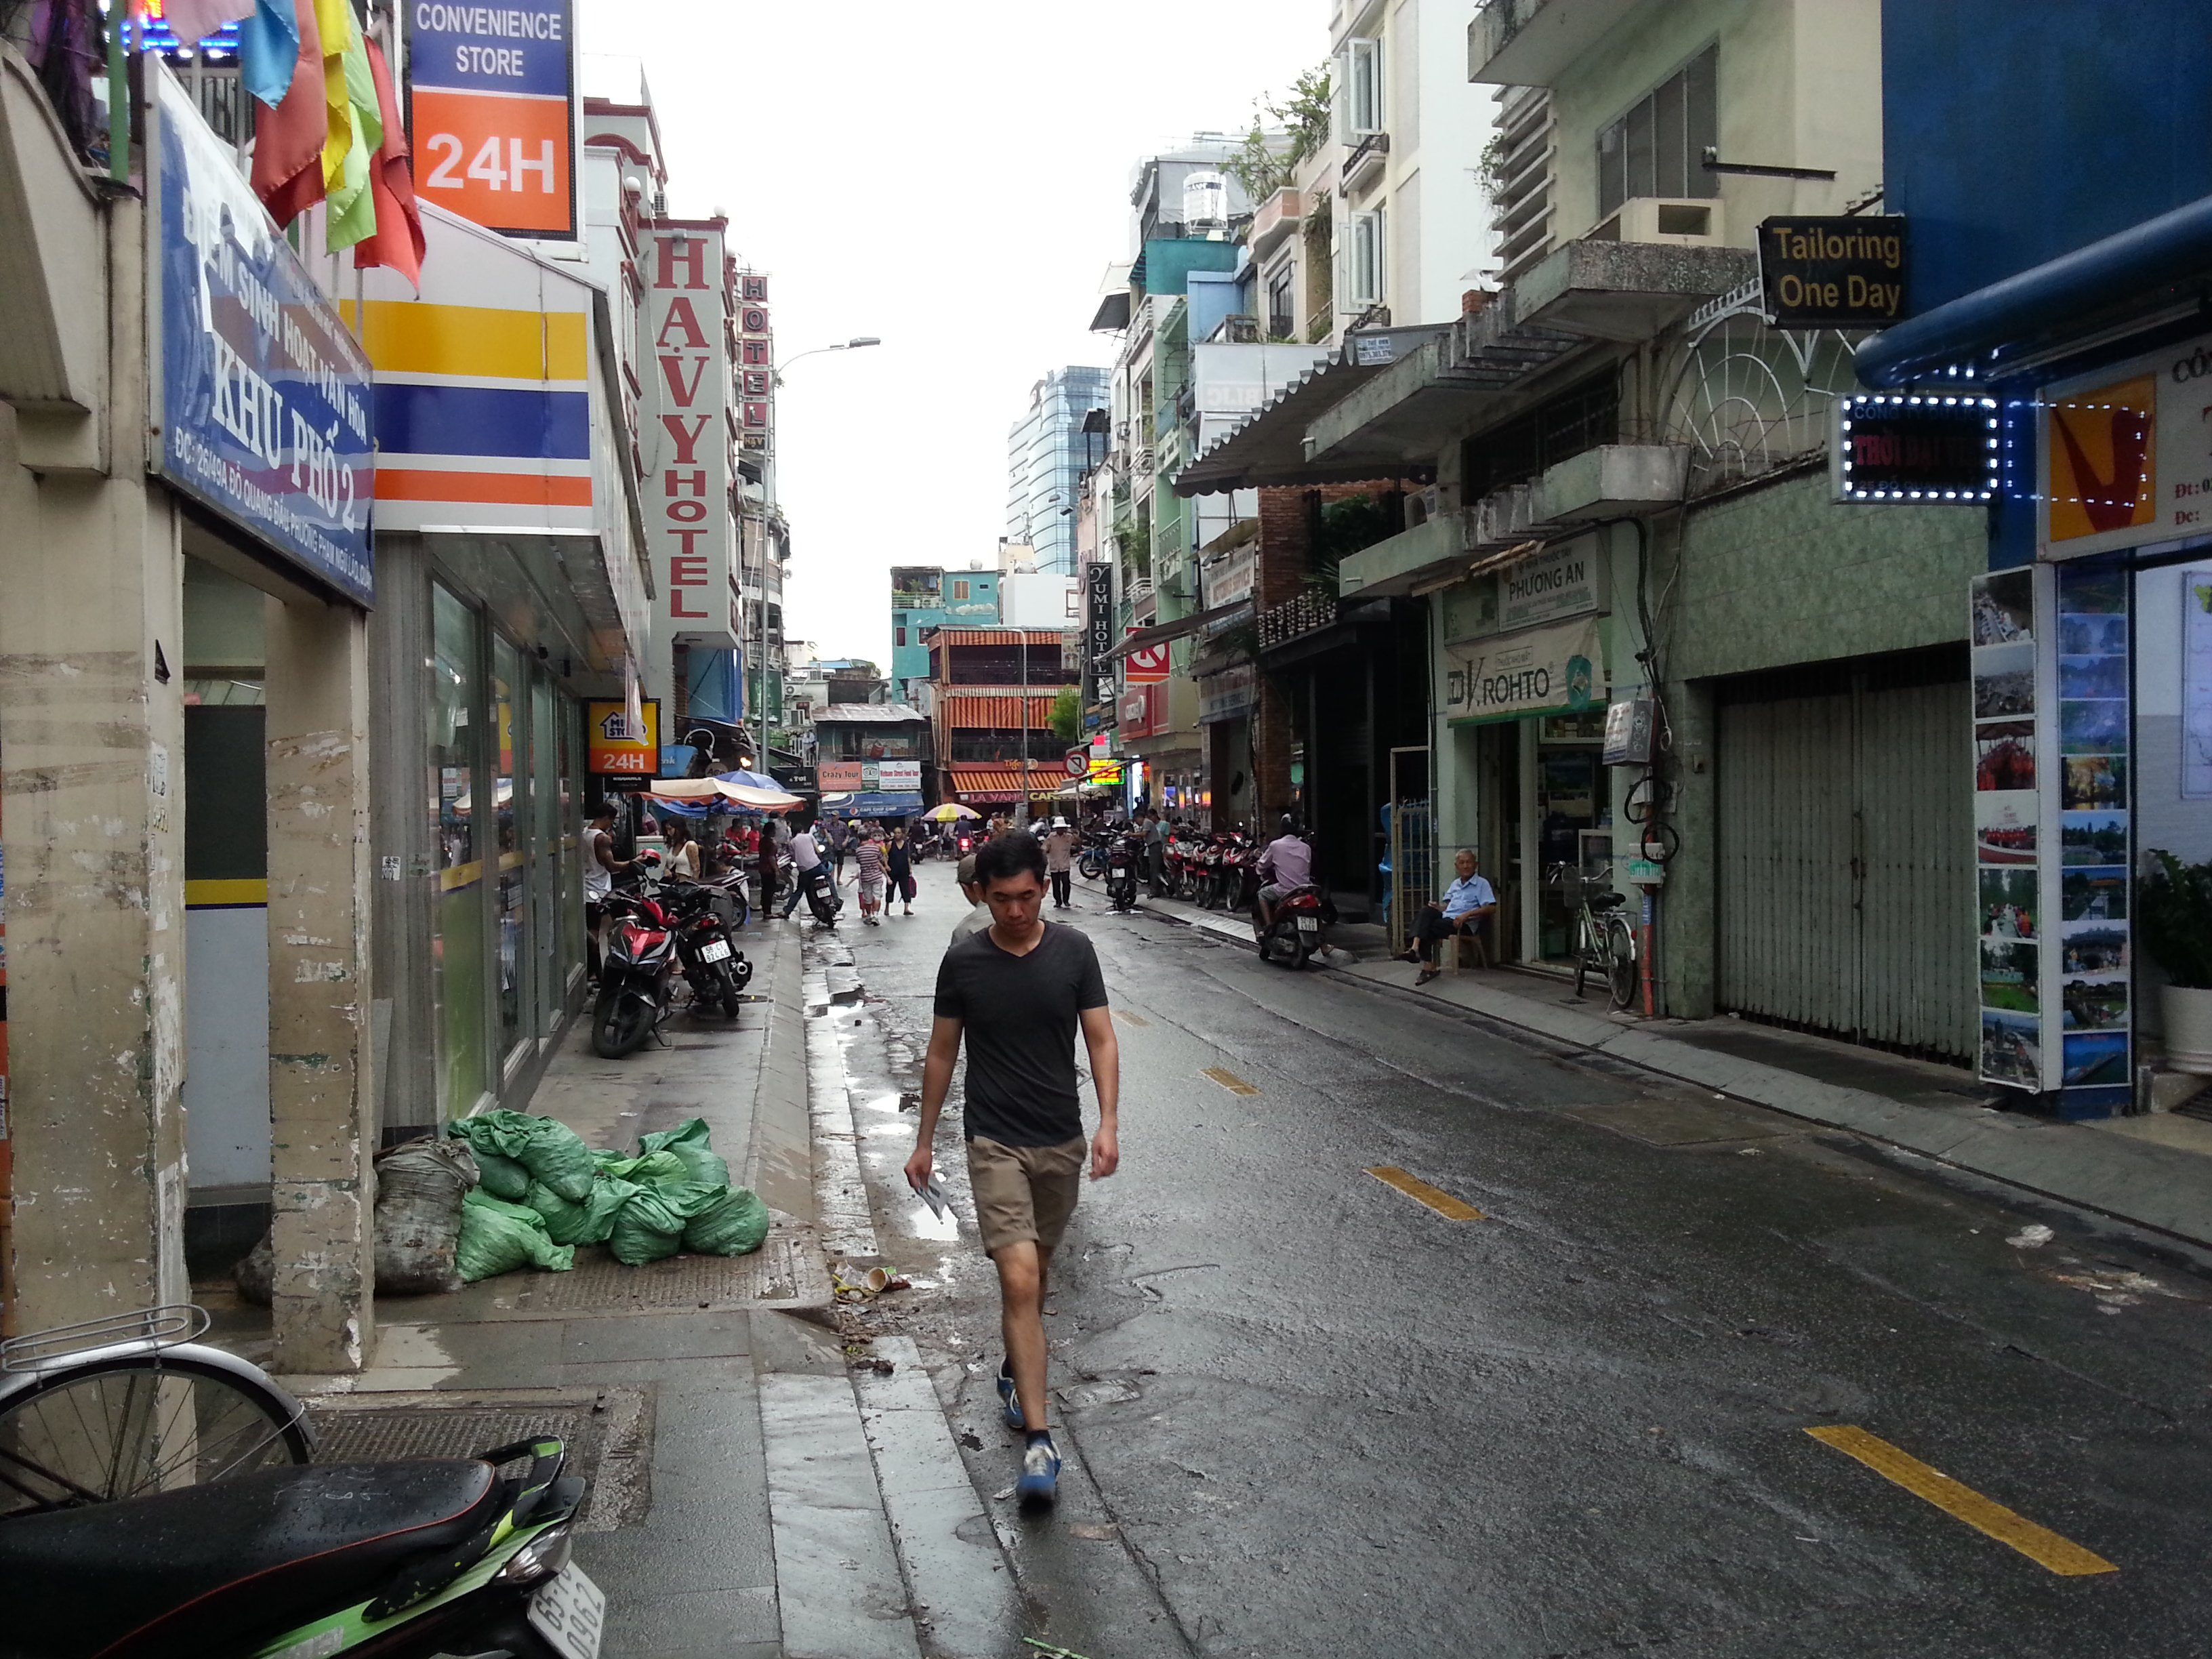 There are shops and restaurants near the Ha Vy Hotel